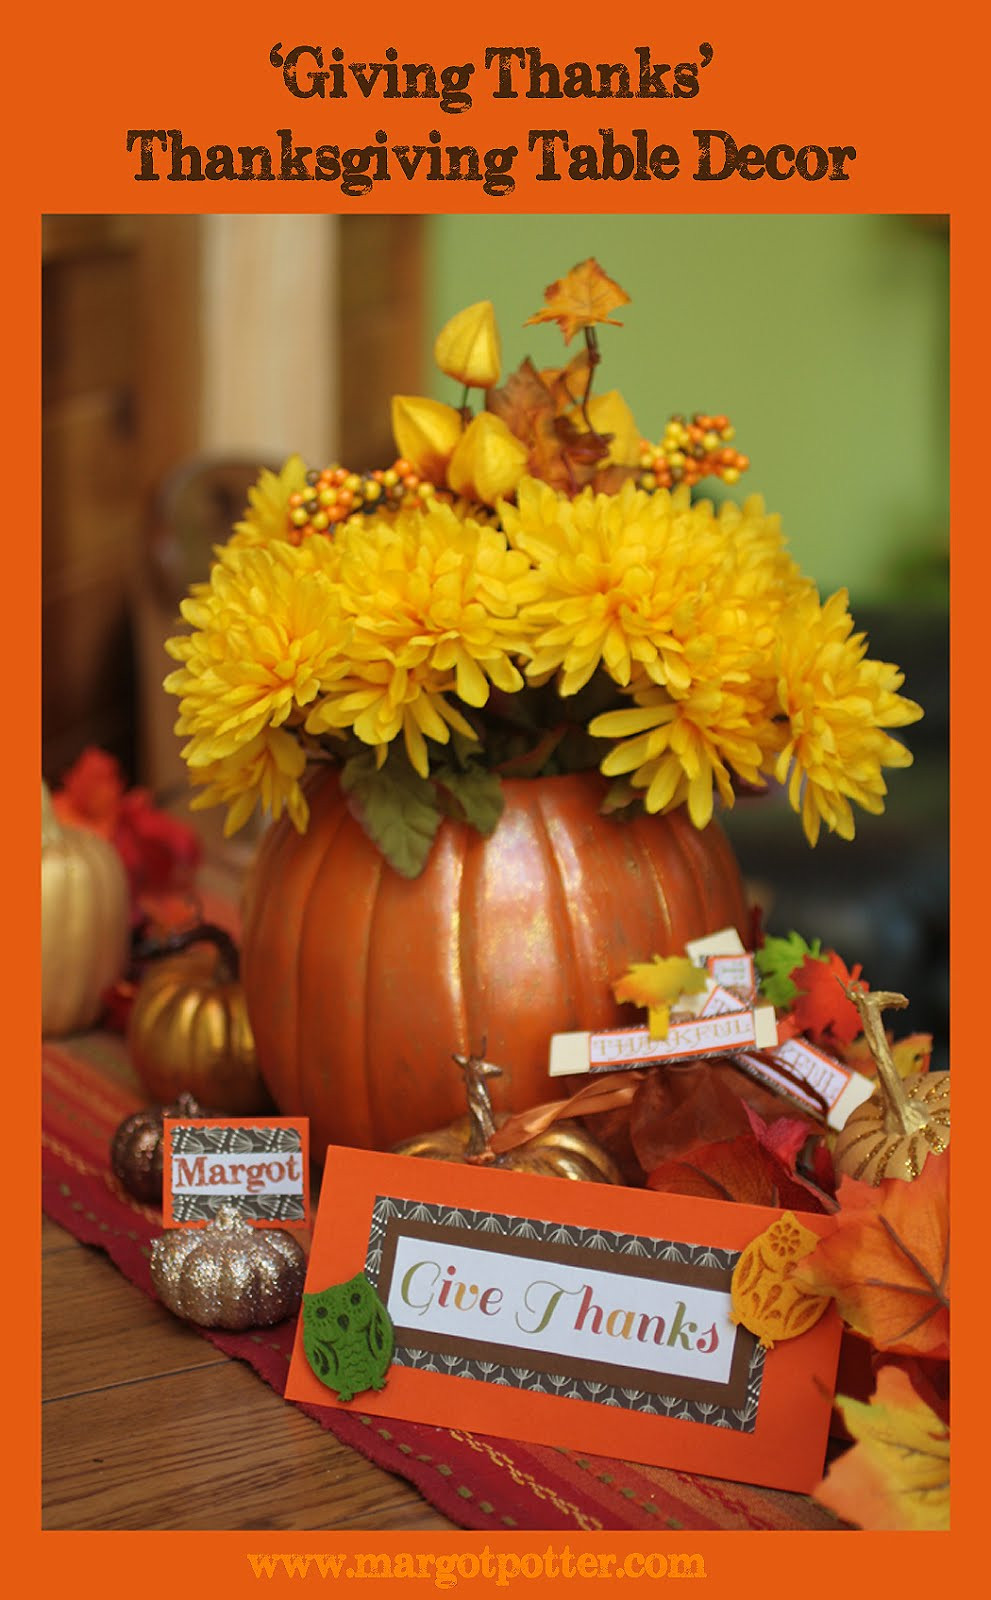 Best ideas about DIY Thanksgiving Table Decorations . Save or Pin iLoveToCreate Blog Giving Thanks DIY Thanksgiving Table Decor Now.